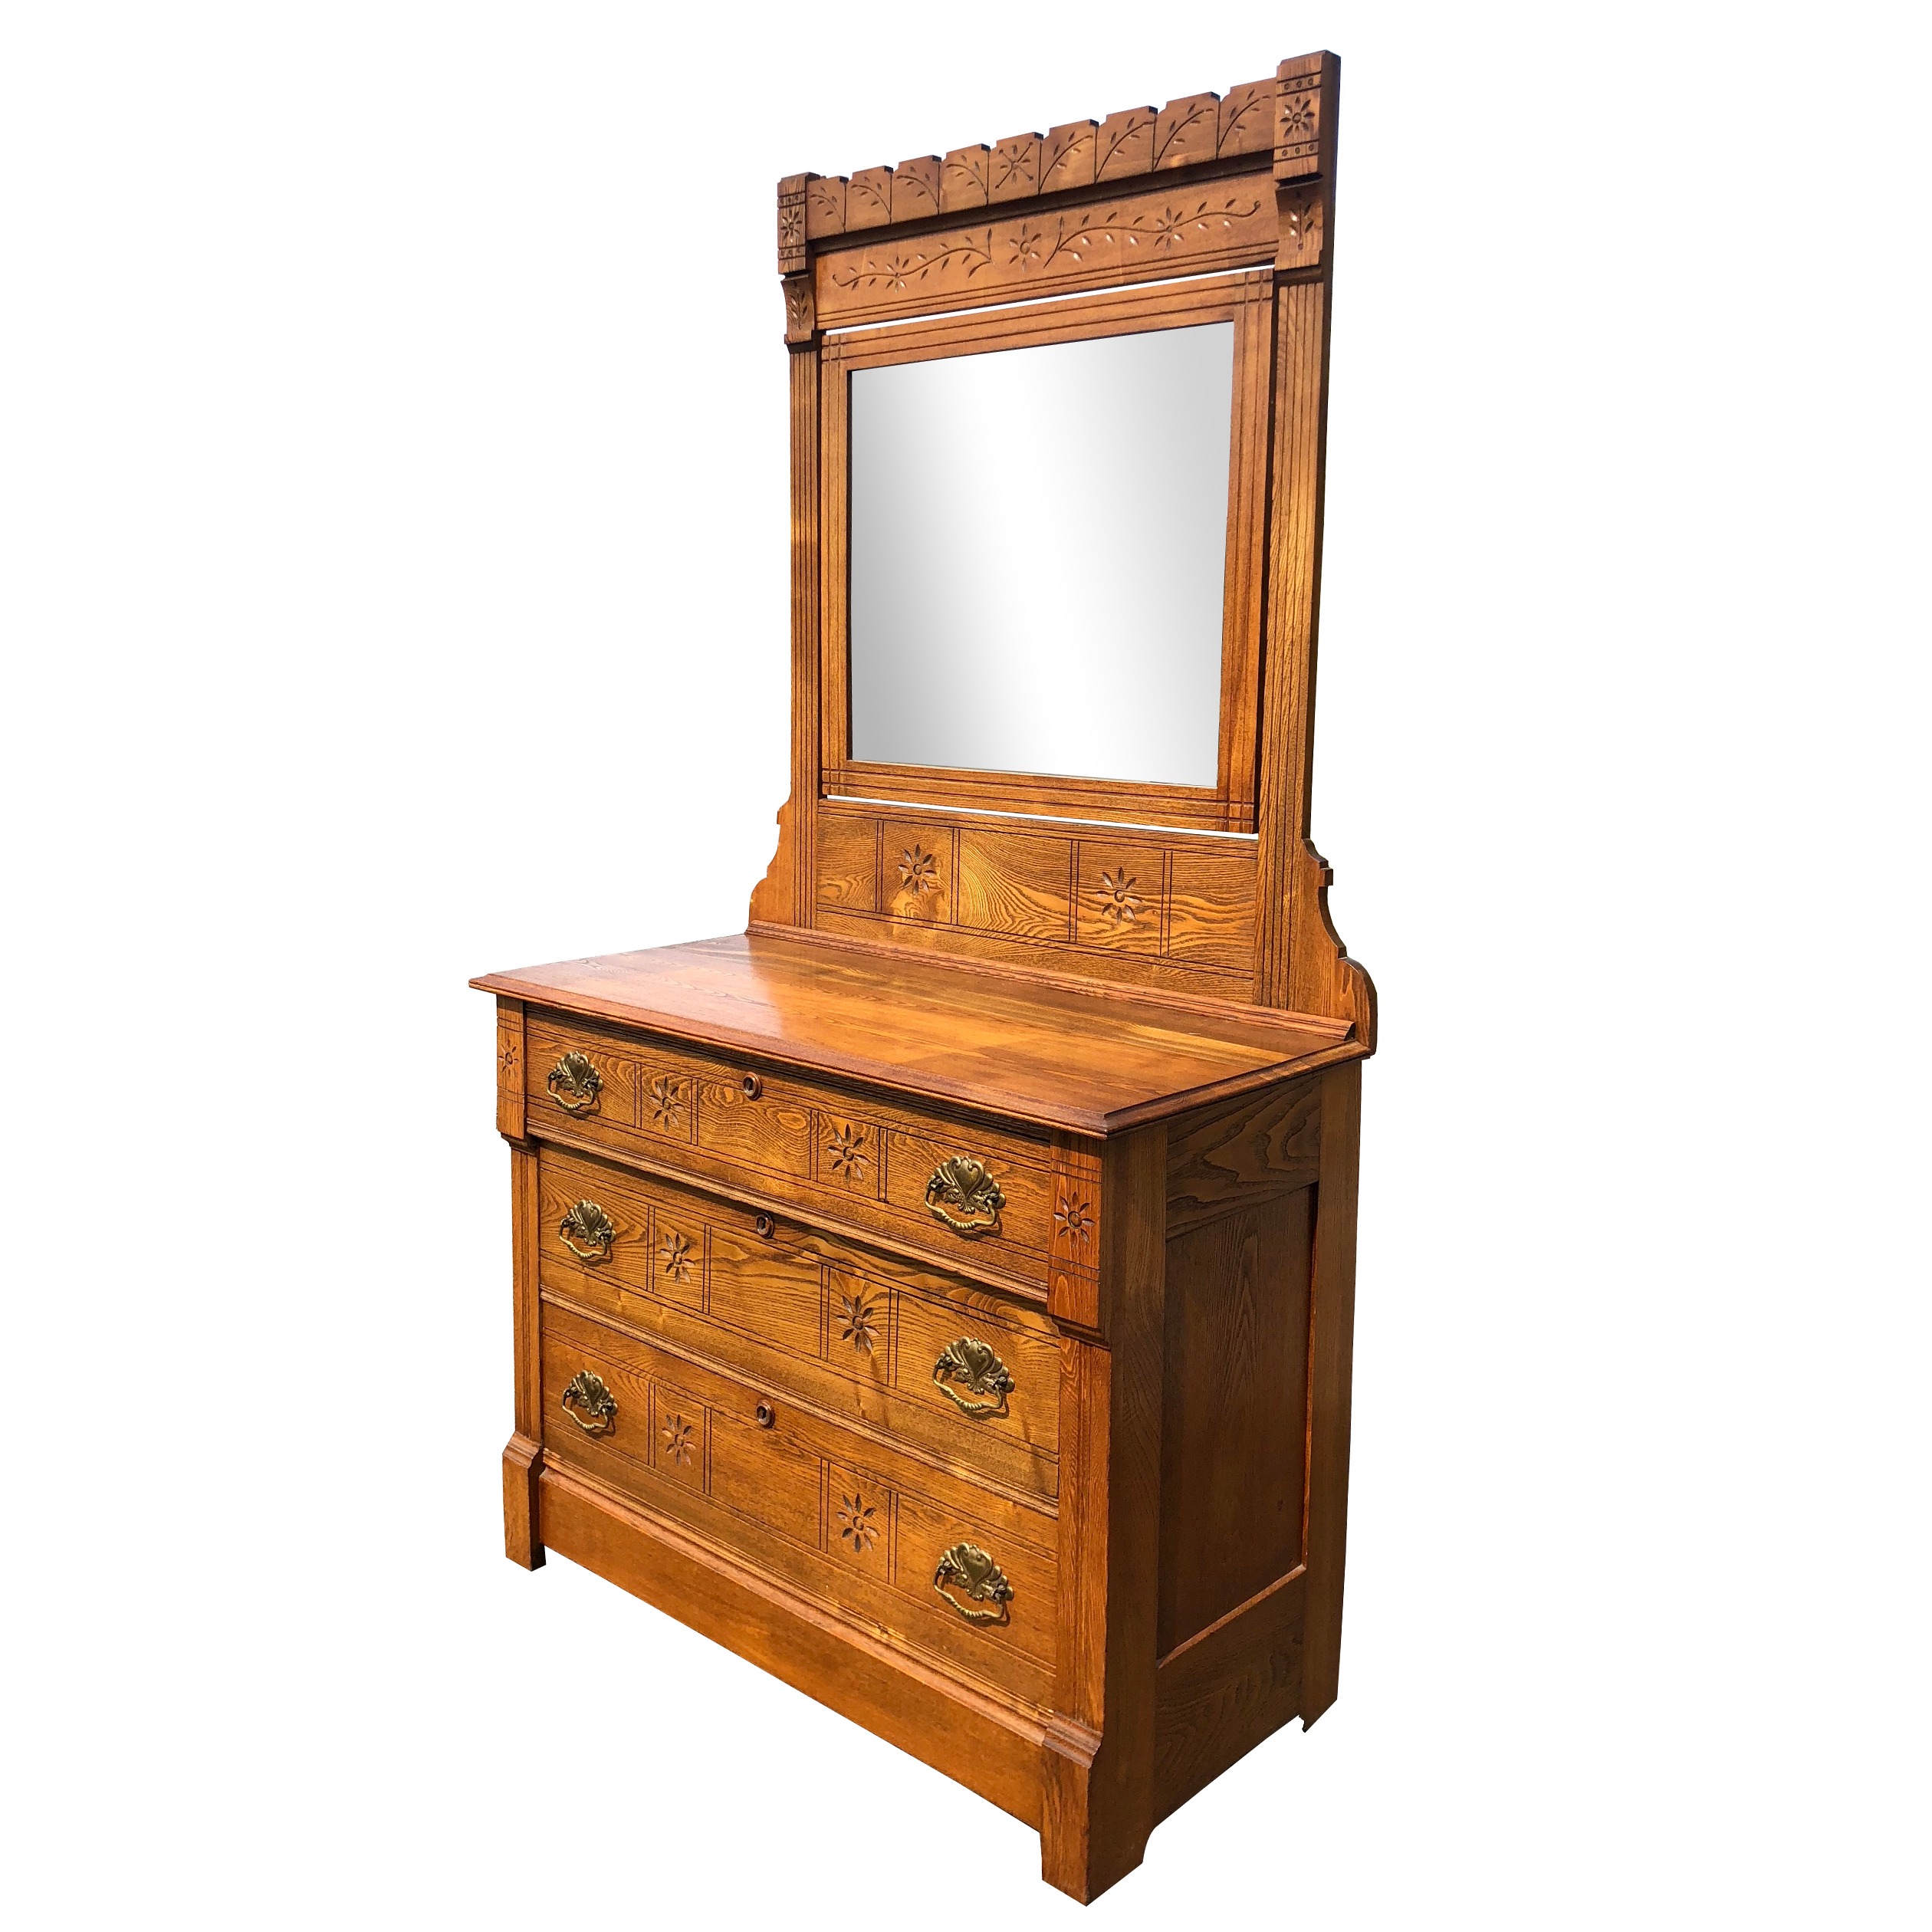 Antique Eastlake Victorian Country Oak Carved Mirrored Dresser Scranton Antiques,How To Get Rid Of Sugar Ants In House